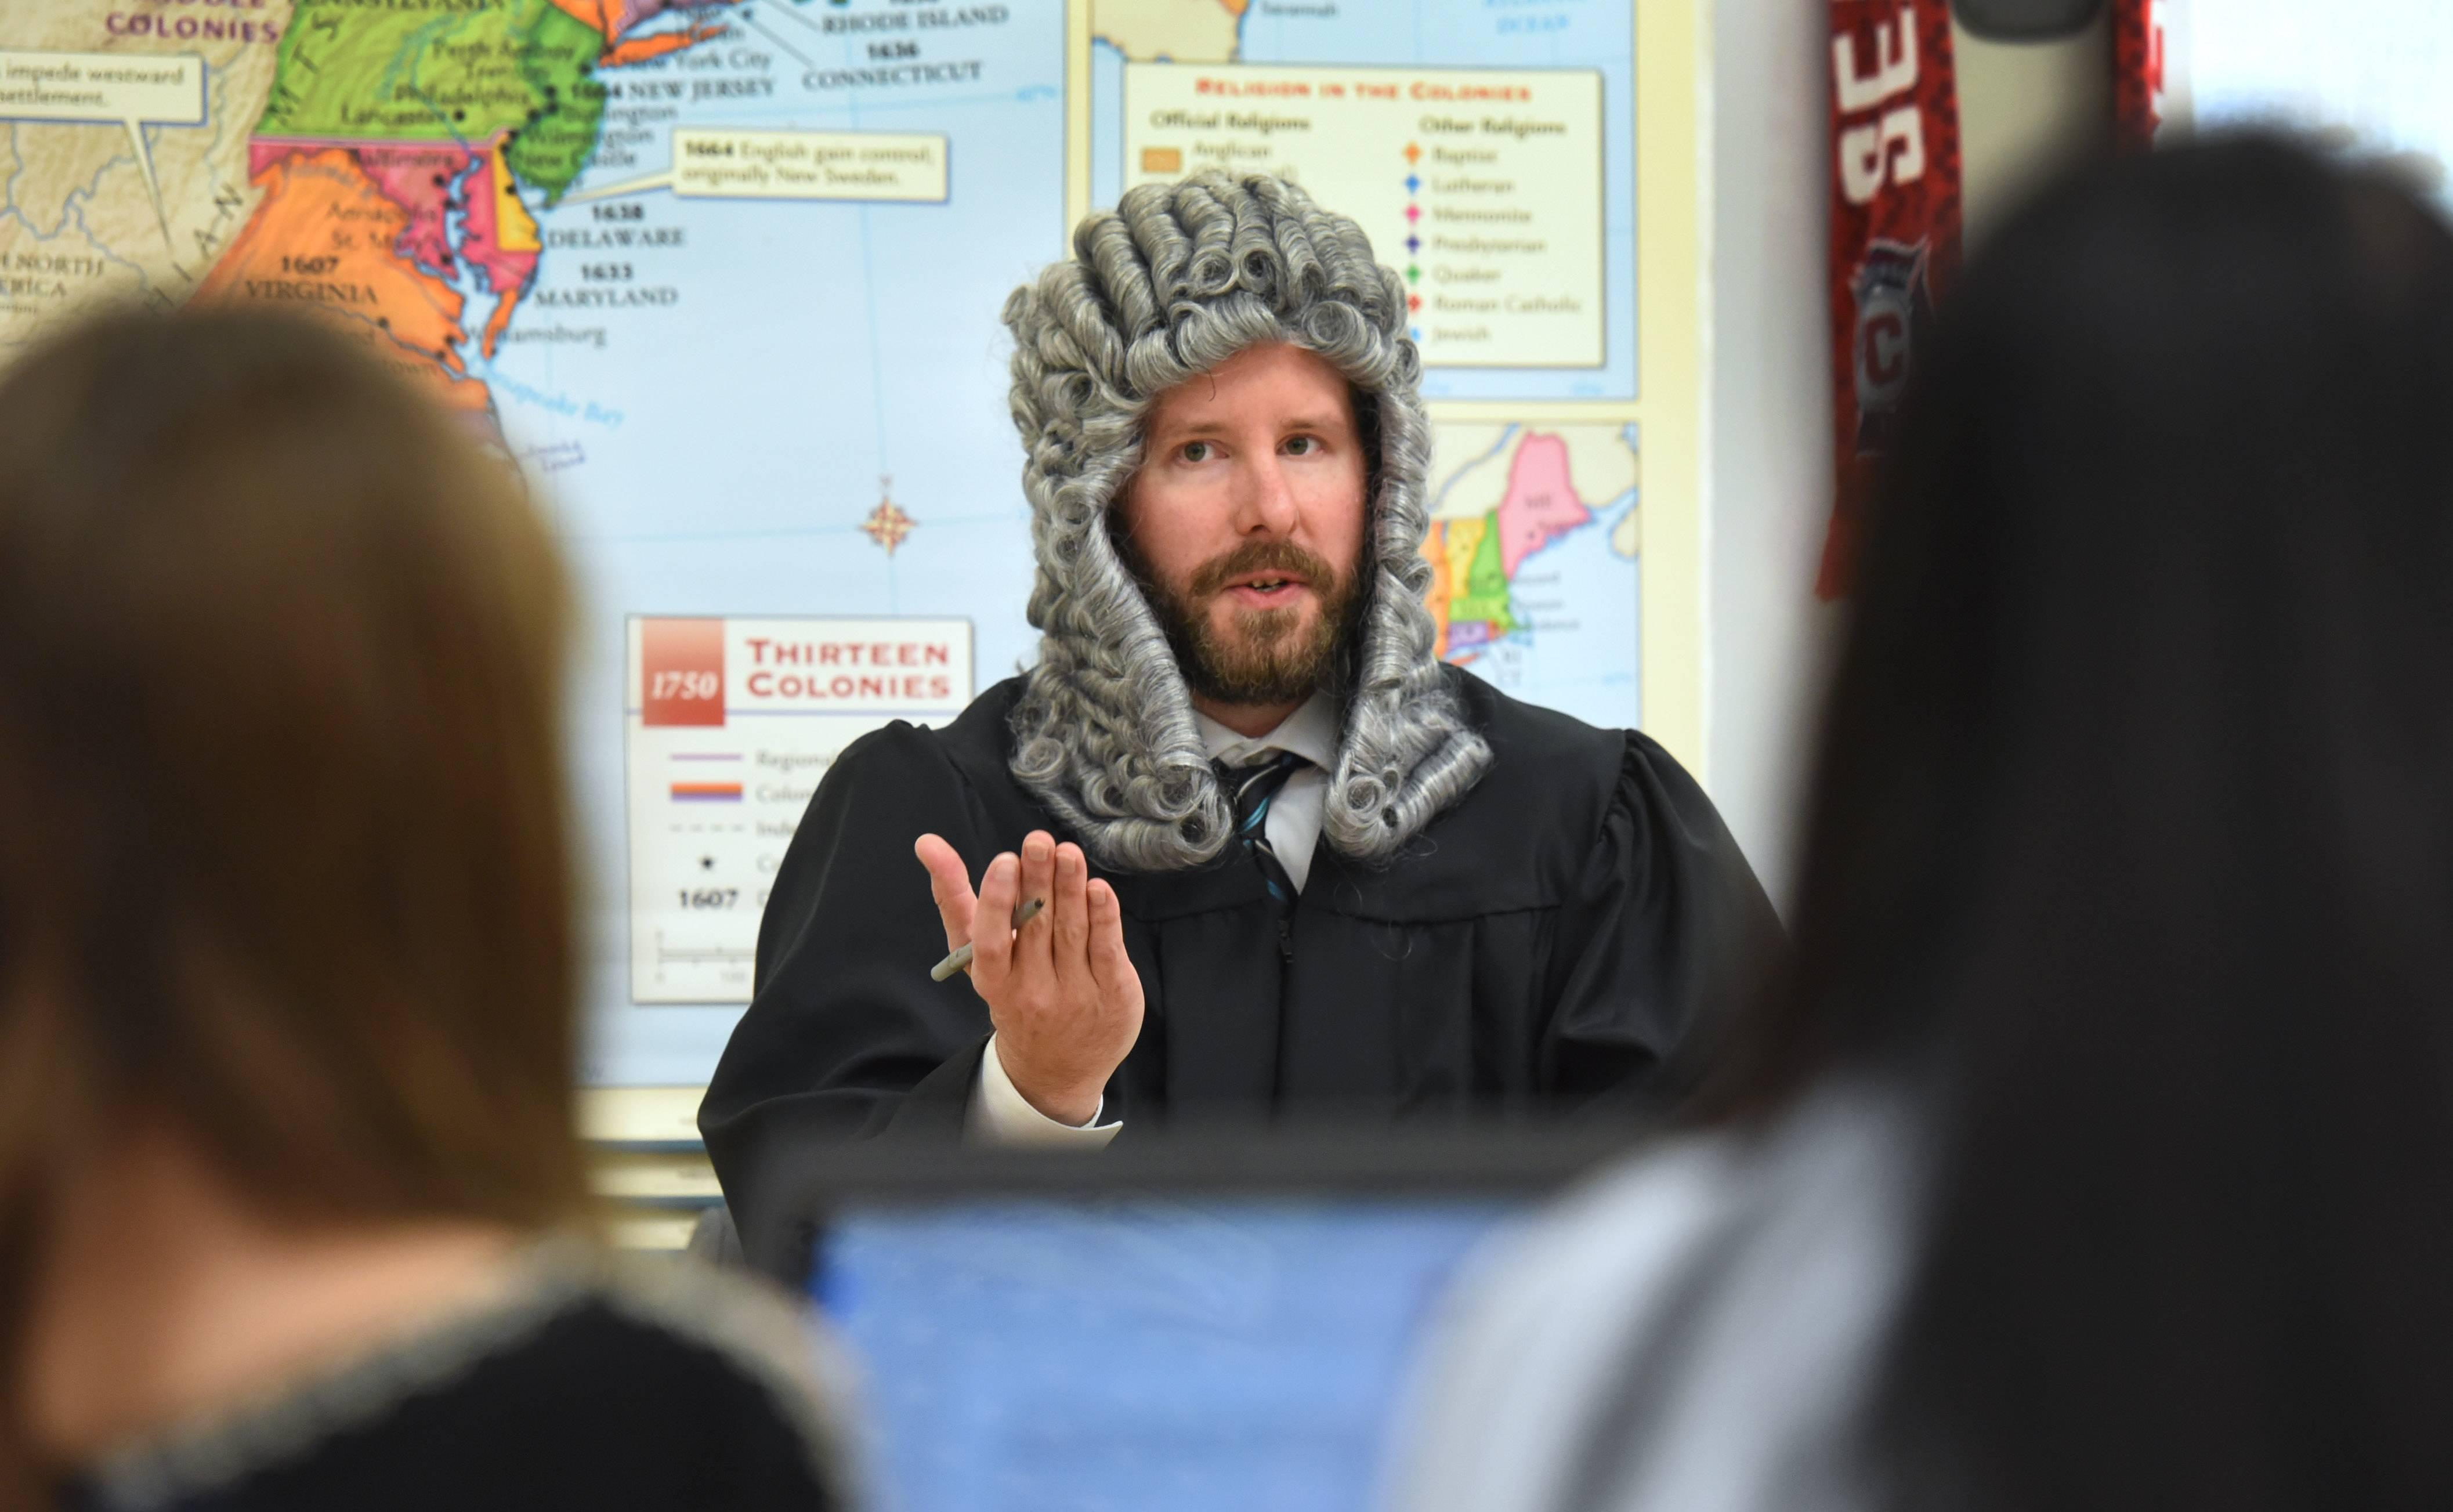 Social studies teacher Matt Lakemacher plays a judge during a Boston Massacre mock trial he conducted Thursday with his seventh-grade students at Woodland Middle School in Gurnee.